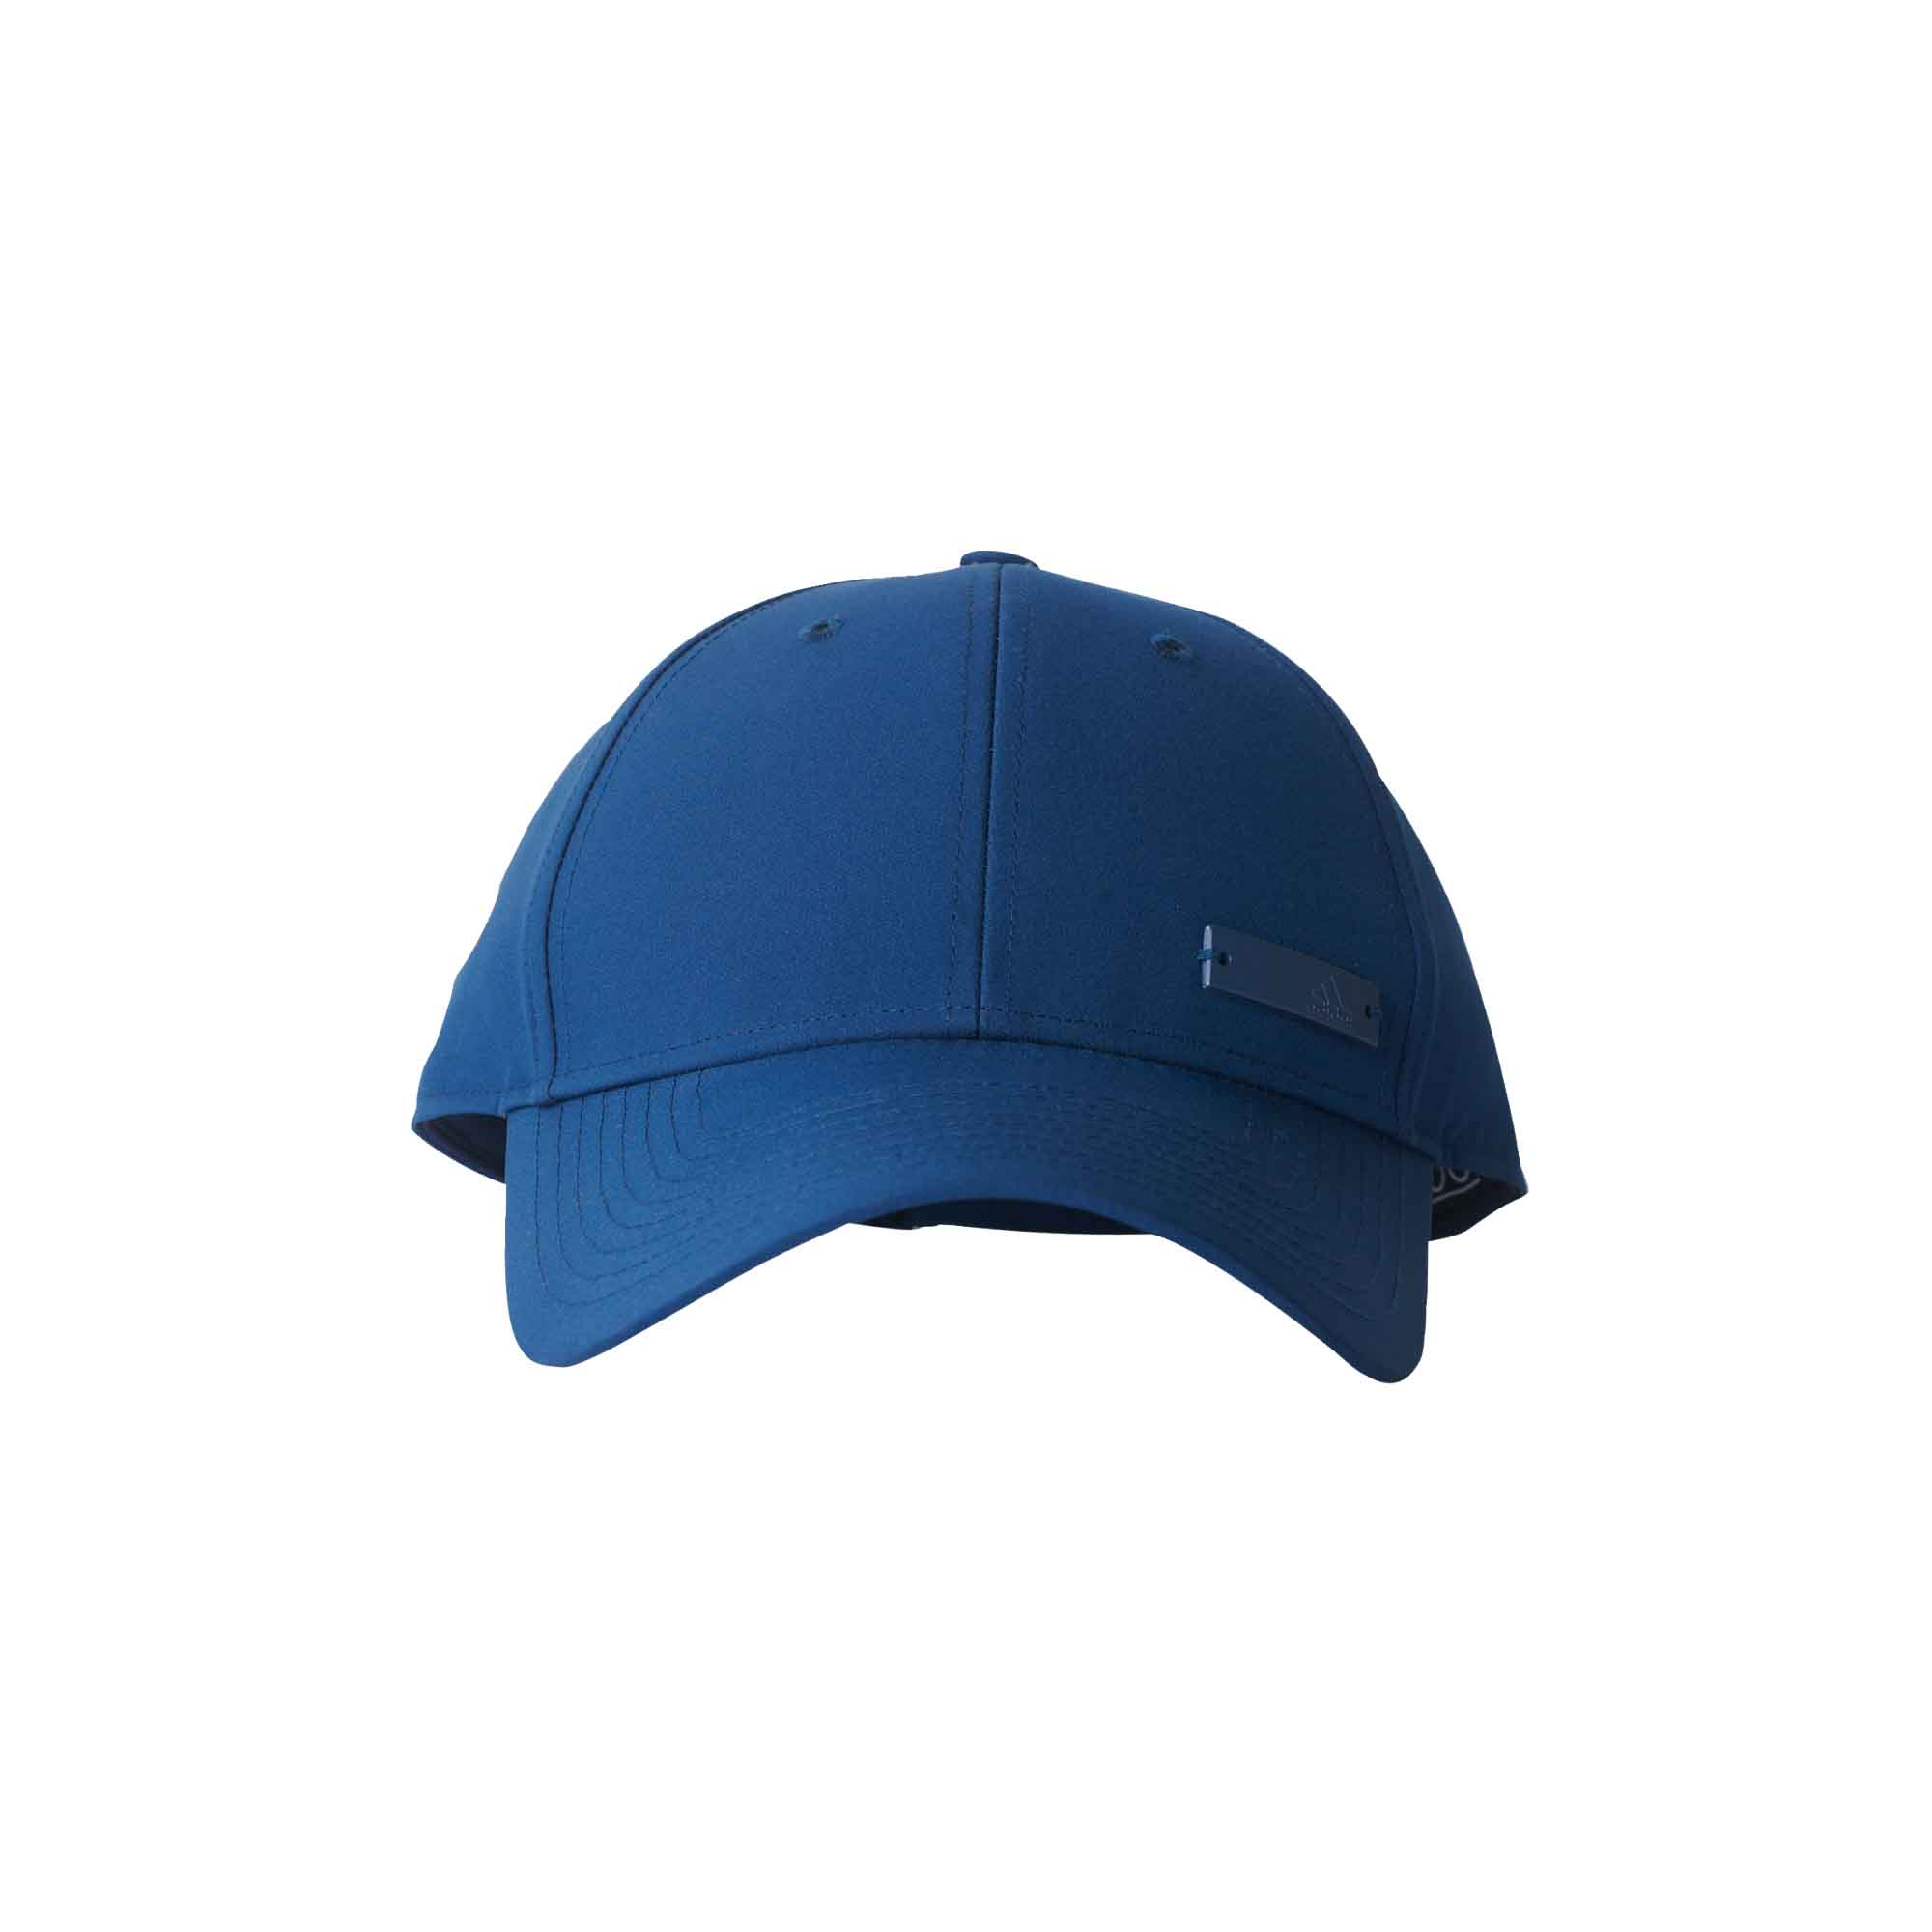 Details about adidas Metal Logo Mens Kids Lightweight Baseball Cap Hat Blue d5488aea177